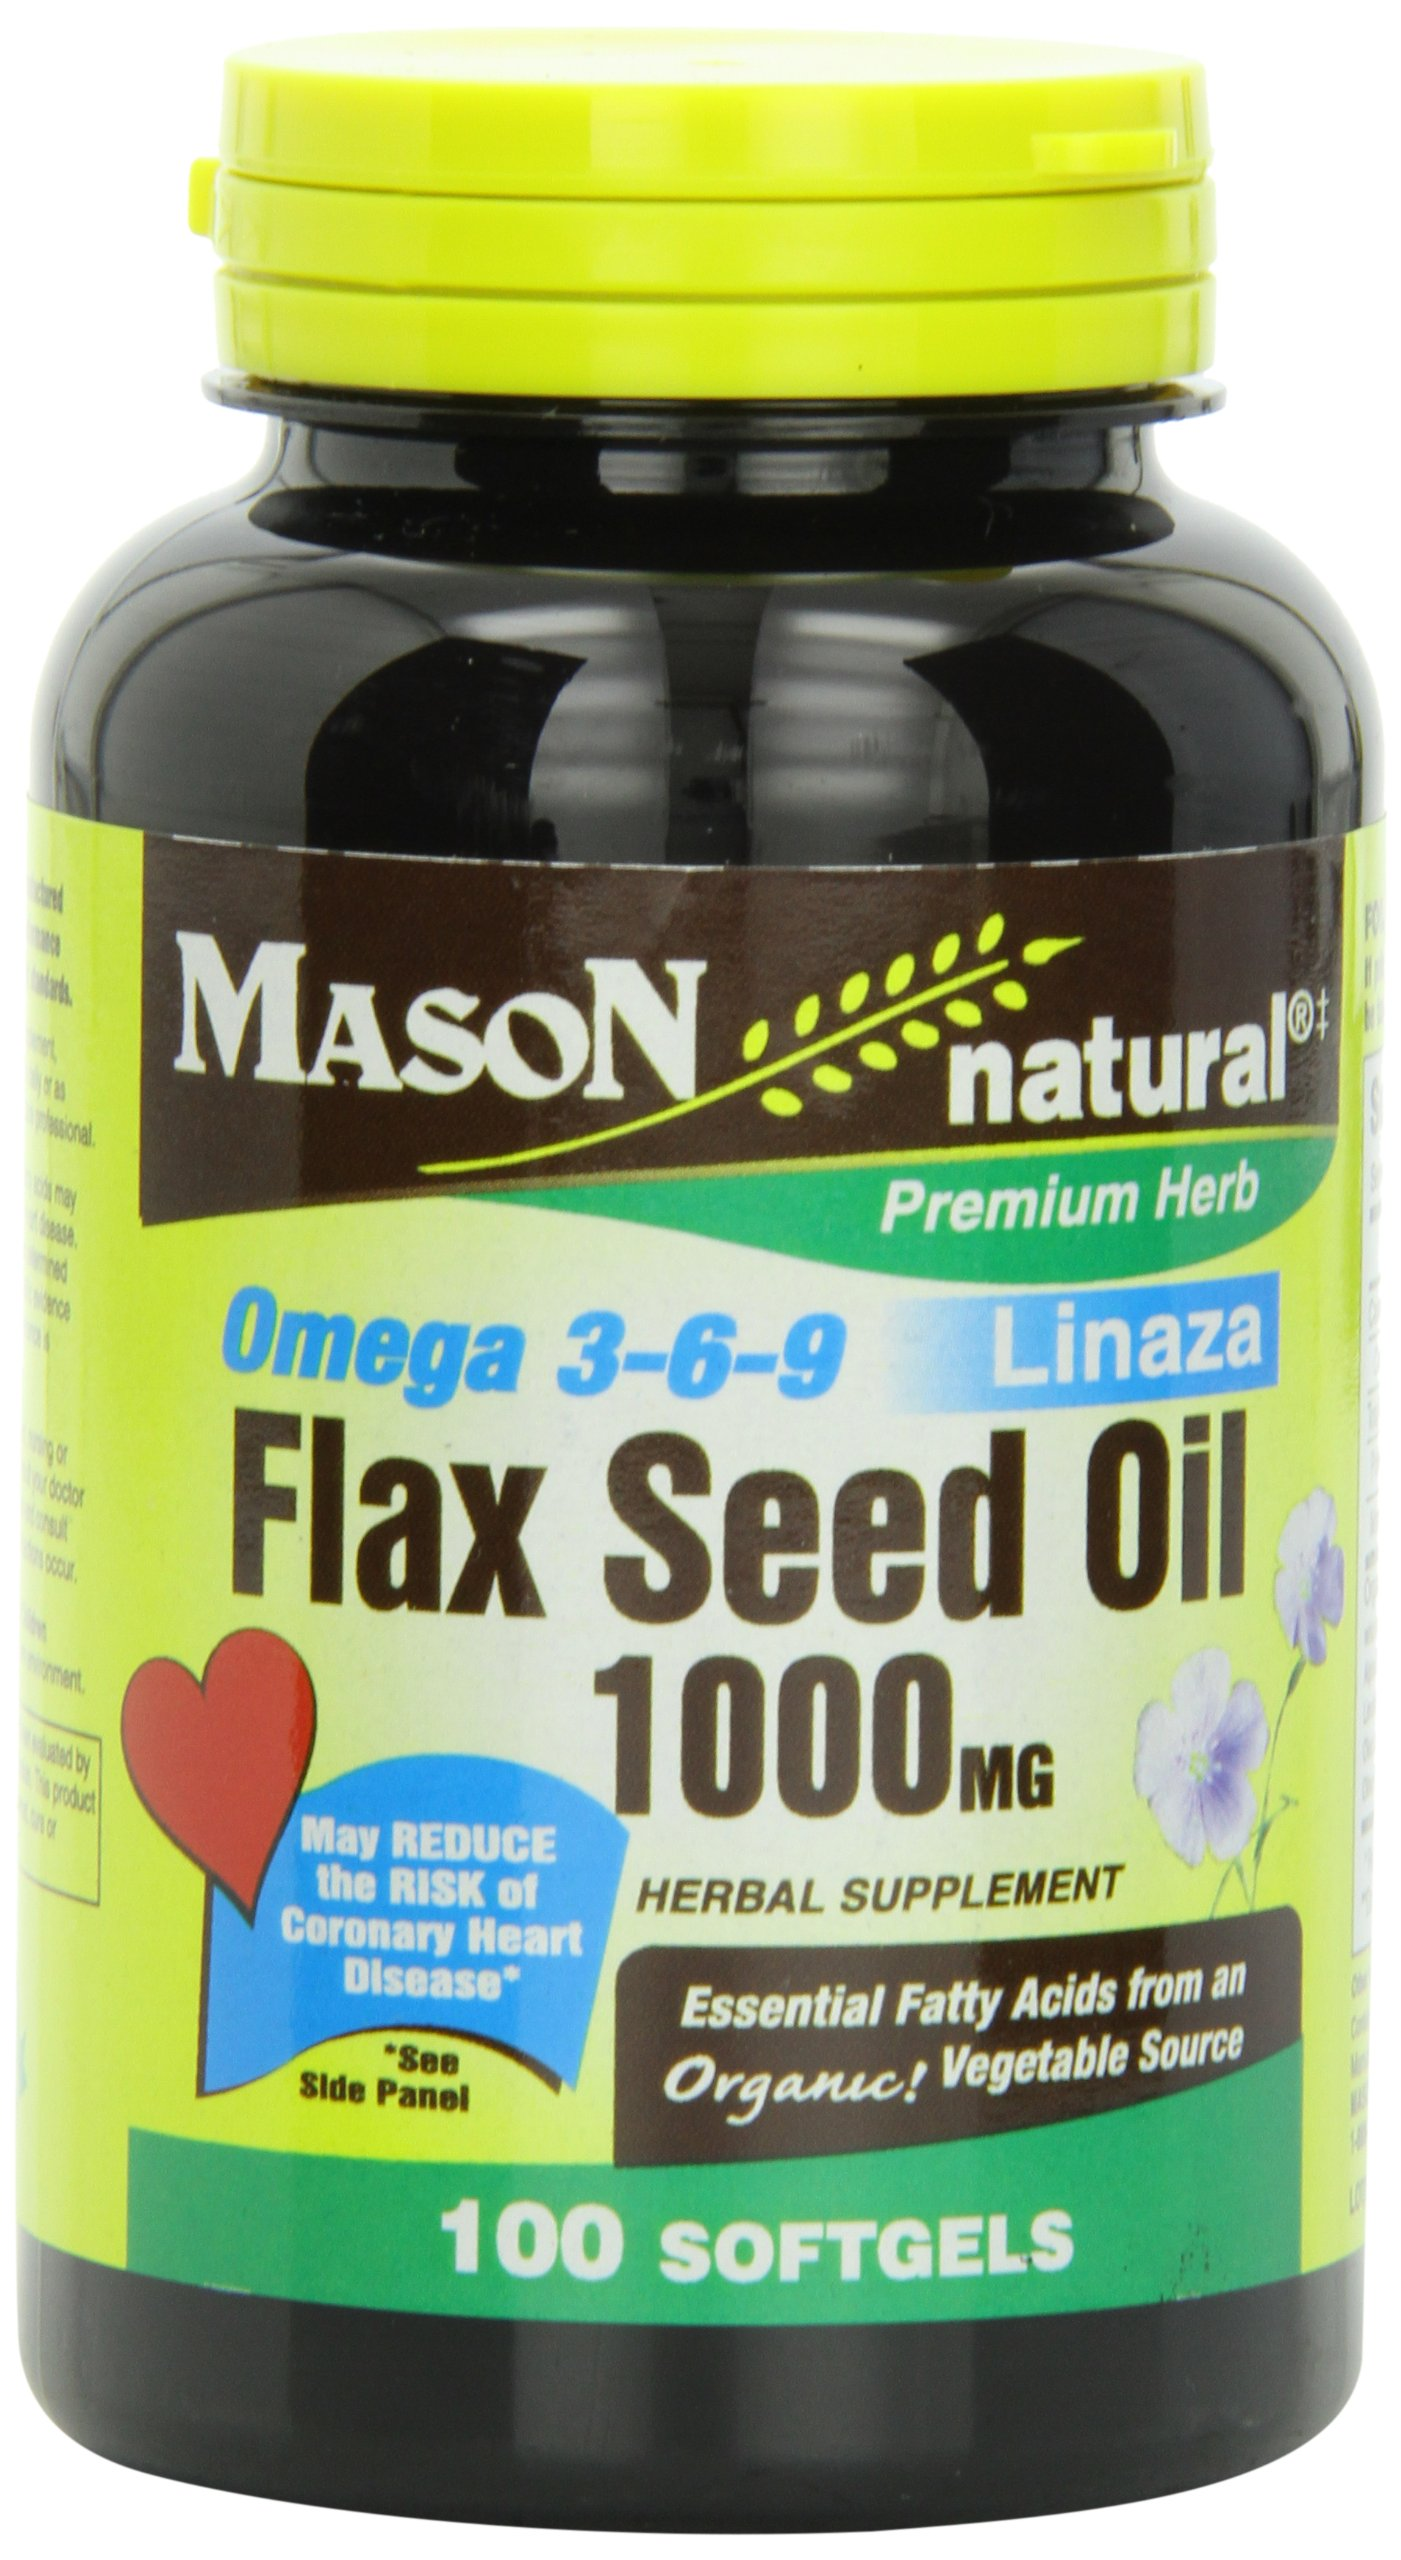 Mason Natural, Flax Seed Oil, 1000 Mg (Omega 3-6-9 Linaza), Softgels, 100 Count Bottle (Pack of 3), Dietary Supplement with Omega Fatty Acids from Flax Seed, Supports Heart and Joint Health